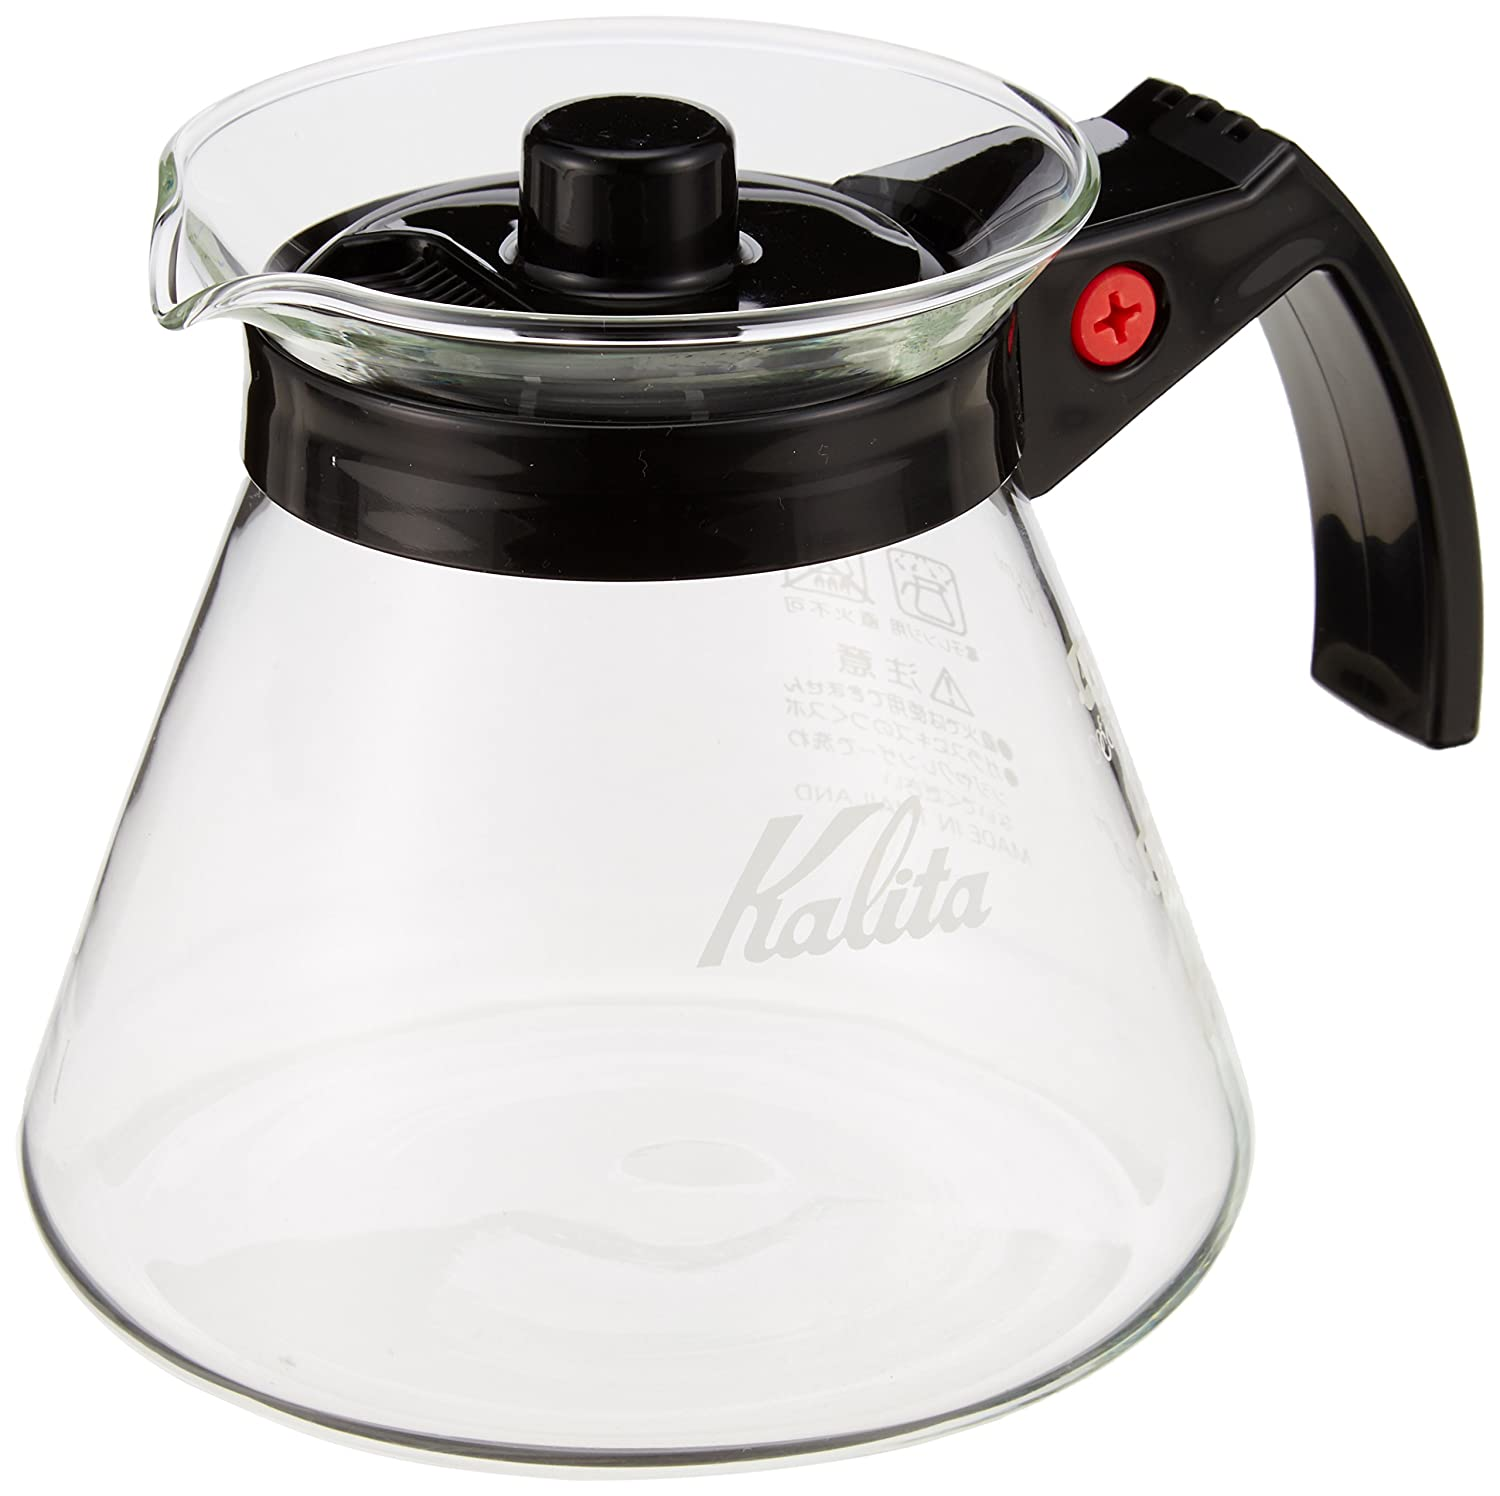 Kalita 500 Server N [102 dripper for/Microwave 500cc # 31205 by Kalita #31205